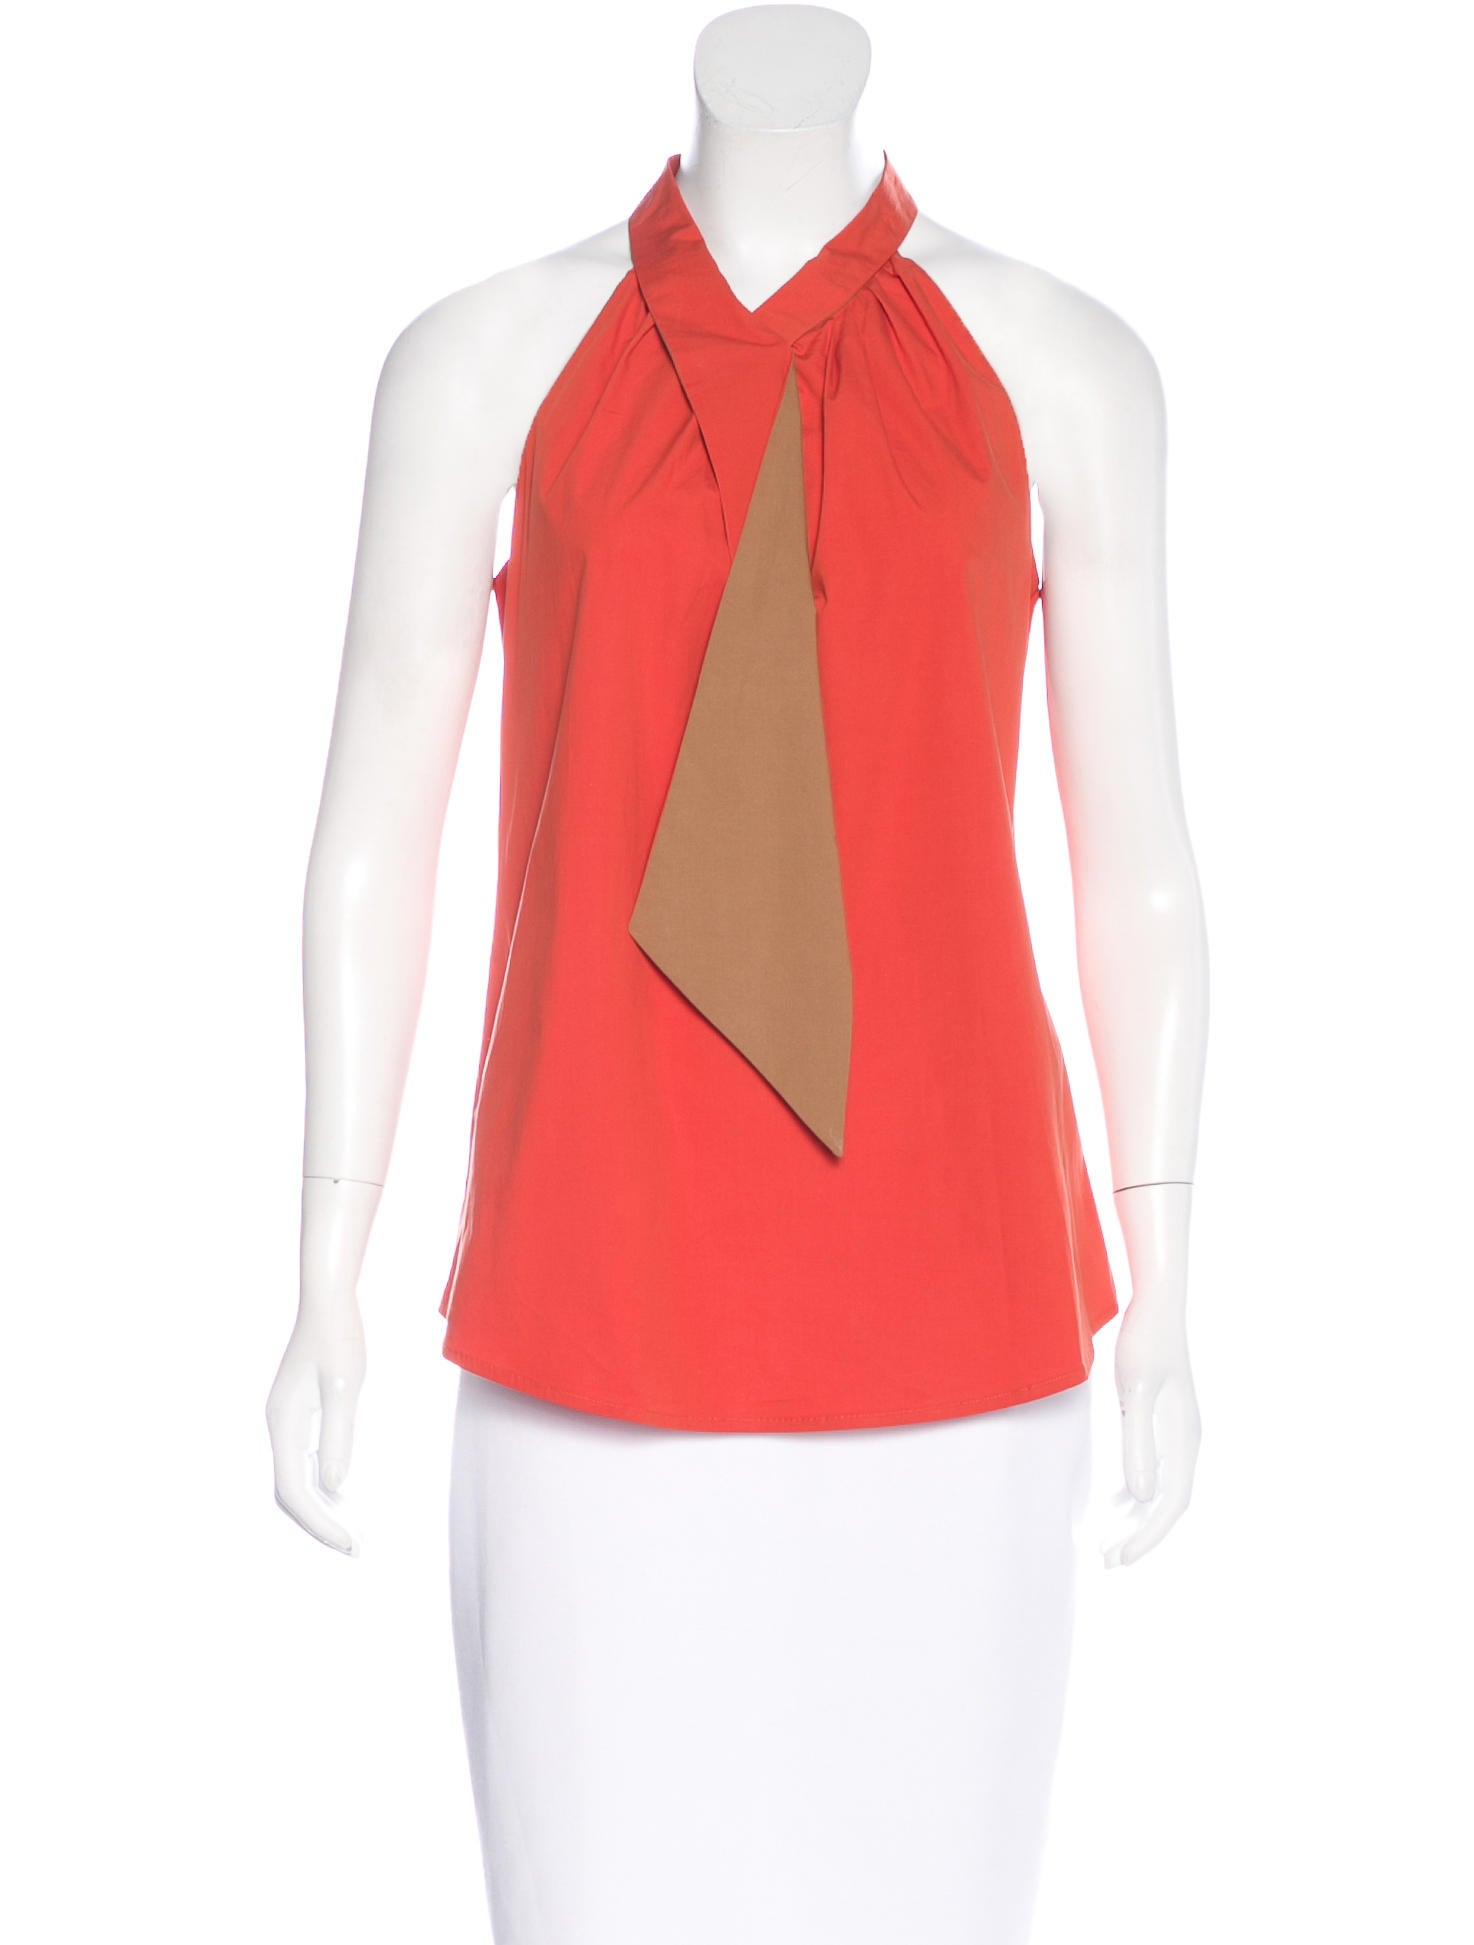 Salvatore Ferragamo Colorblock Sleeveless Top - Clothing - SAL43111 ...